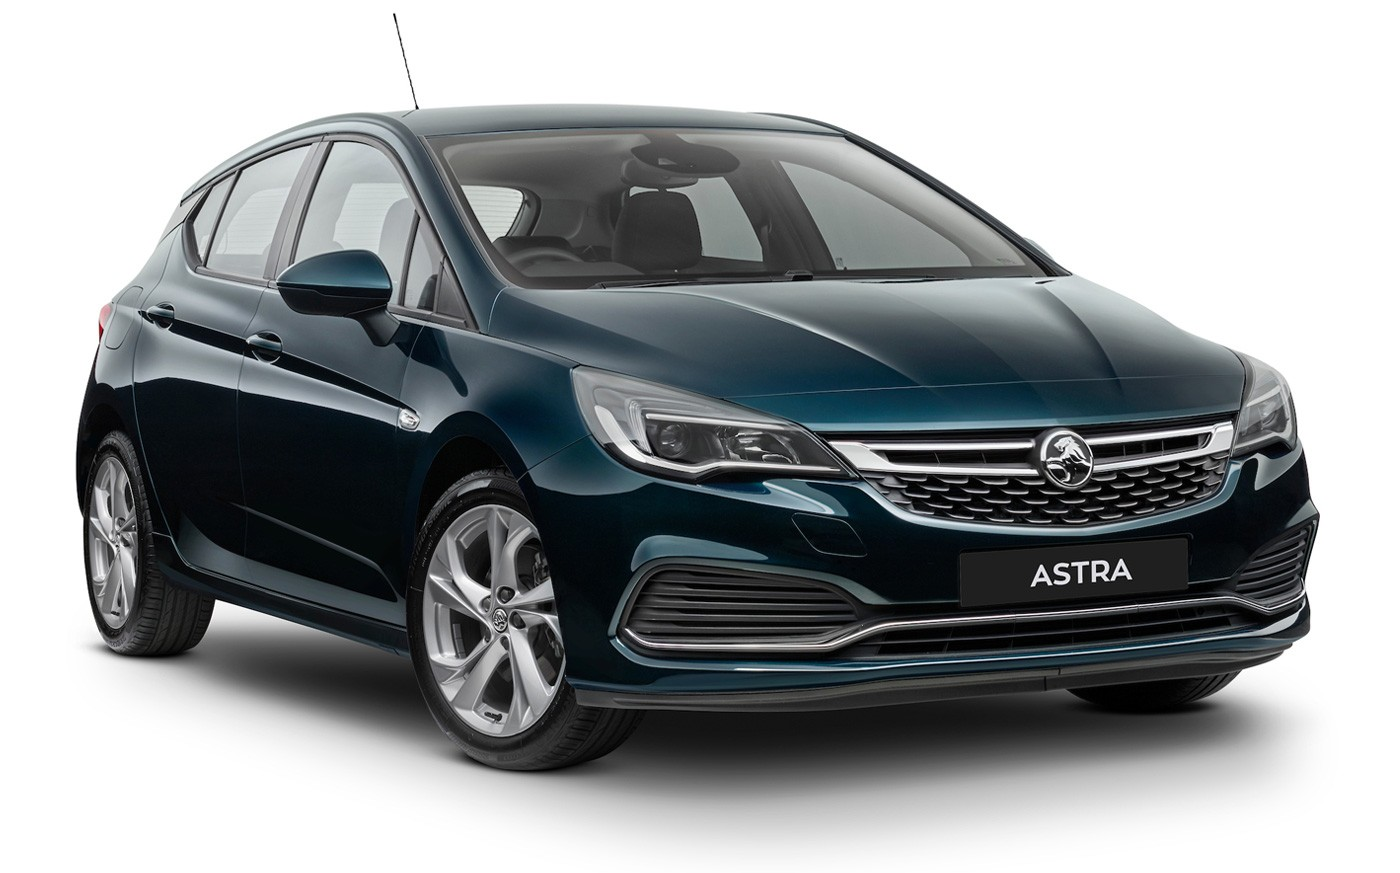 2017 Holden Astra For Australia Has Opc Line Kit And 200 Ps 1 6 Turbo